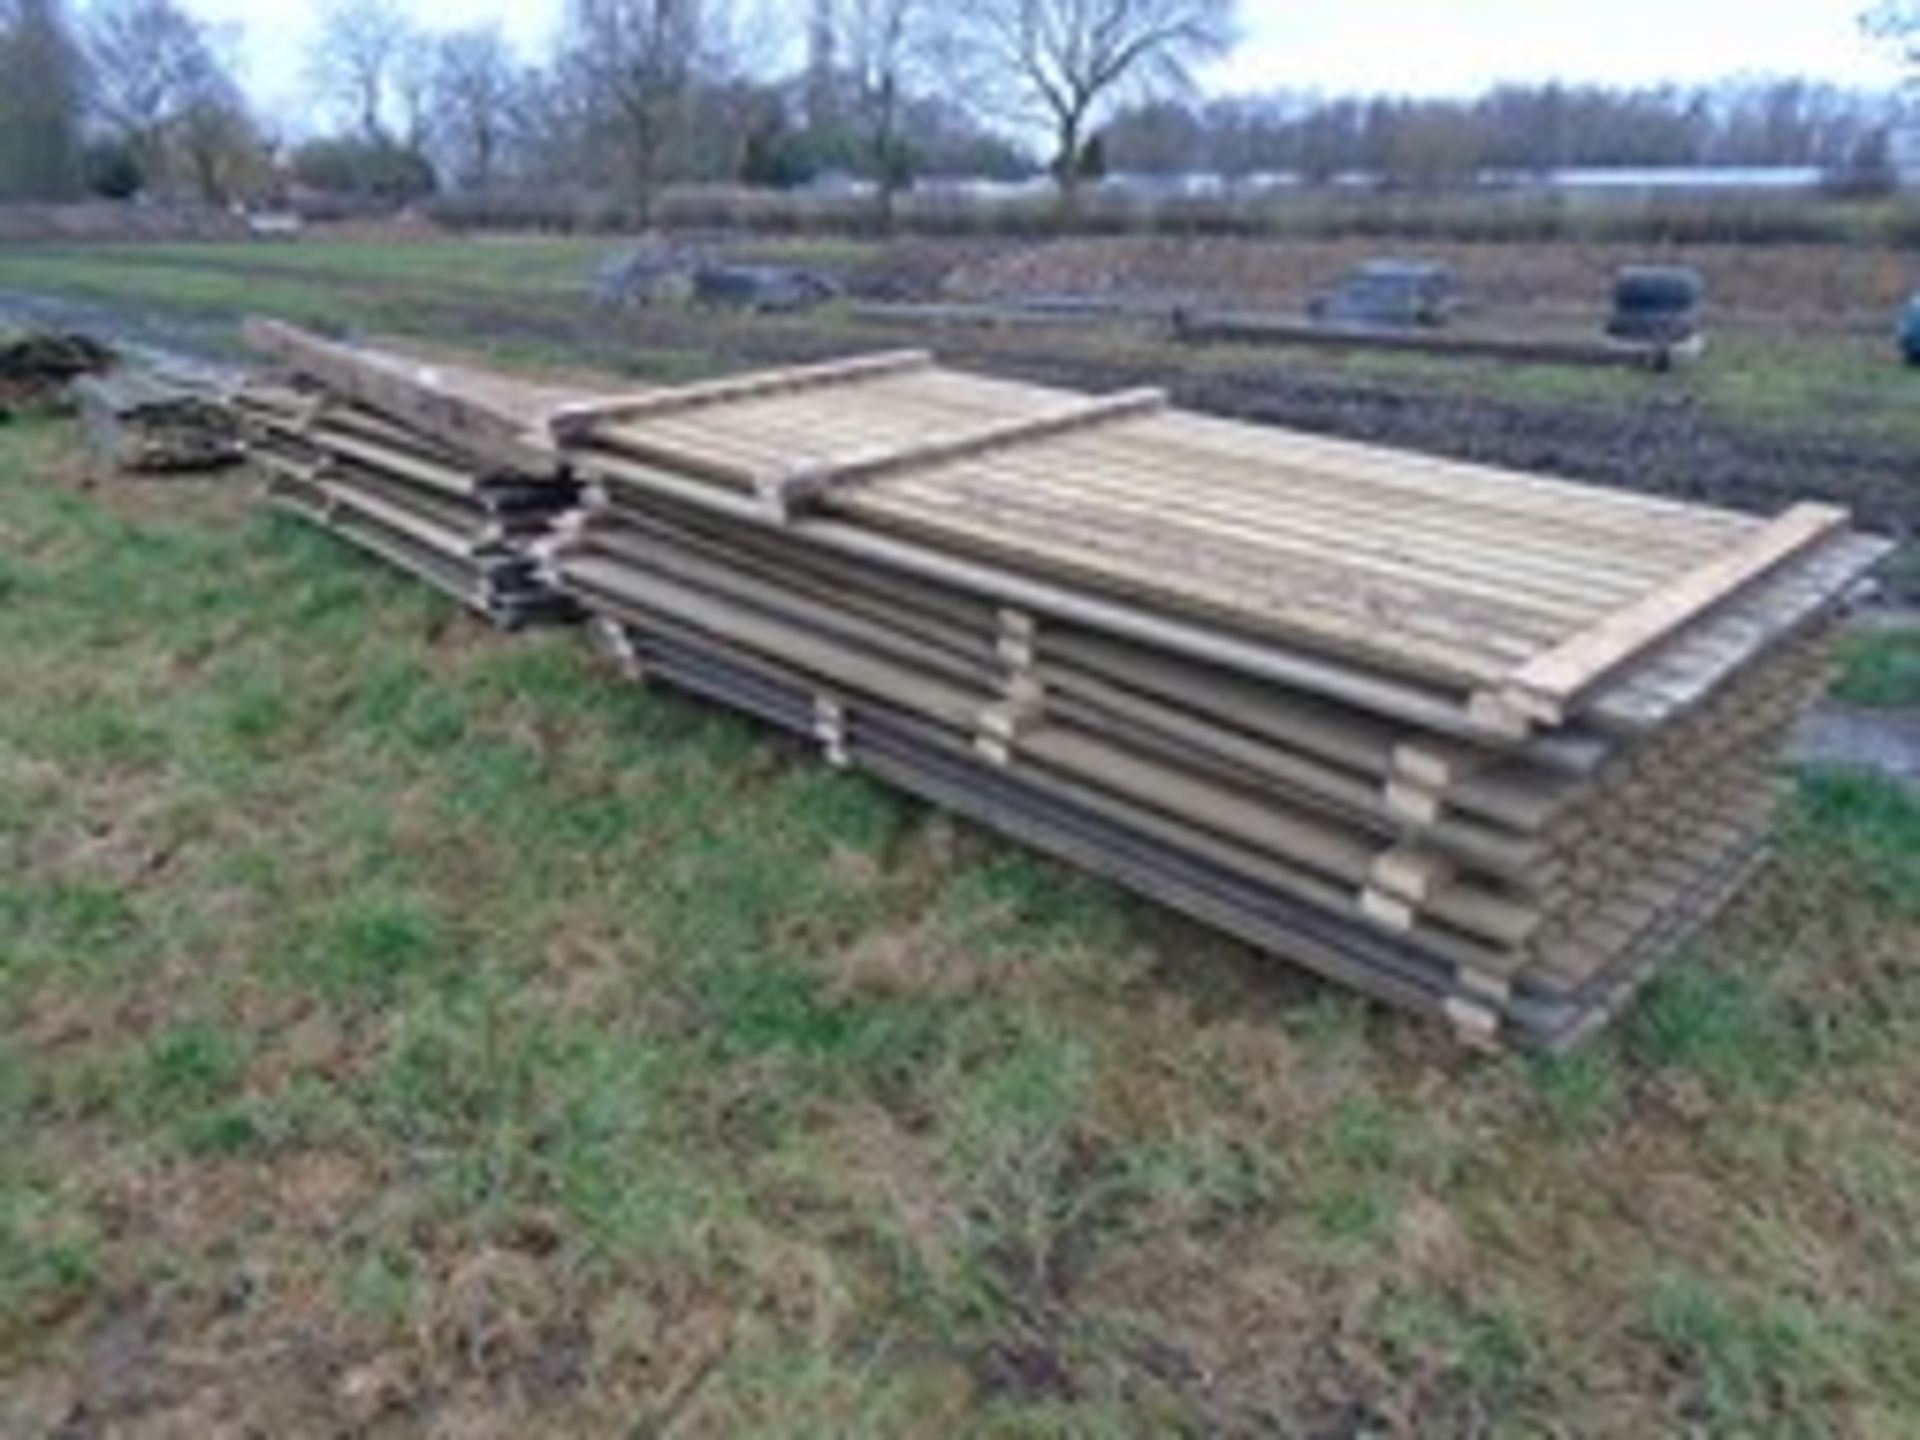 Lot 6 - 2 pallets of Yorkshire Boarding